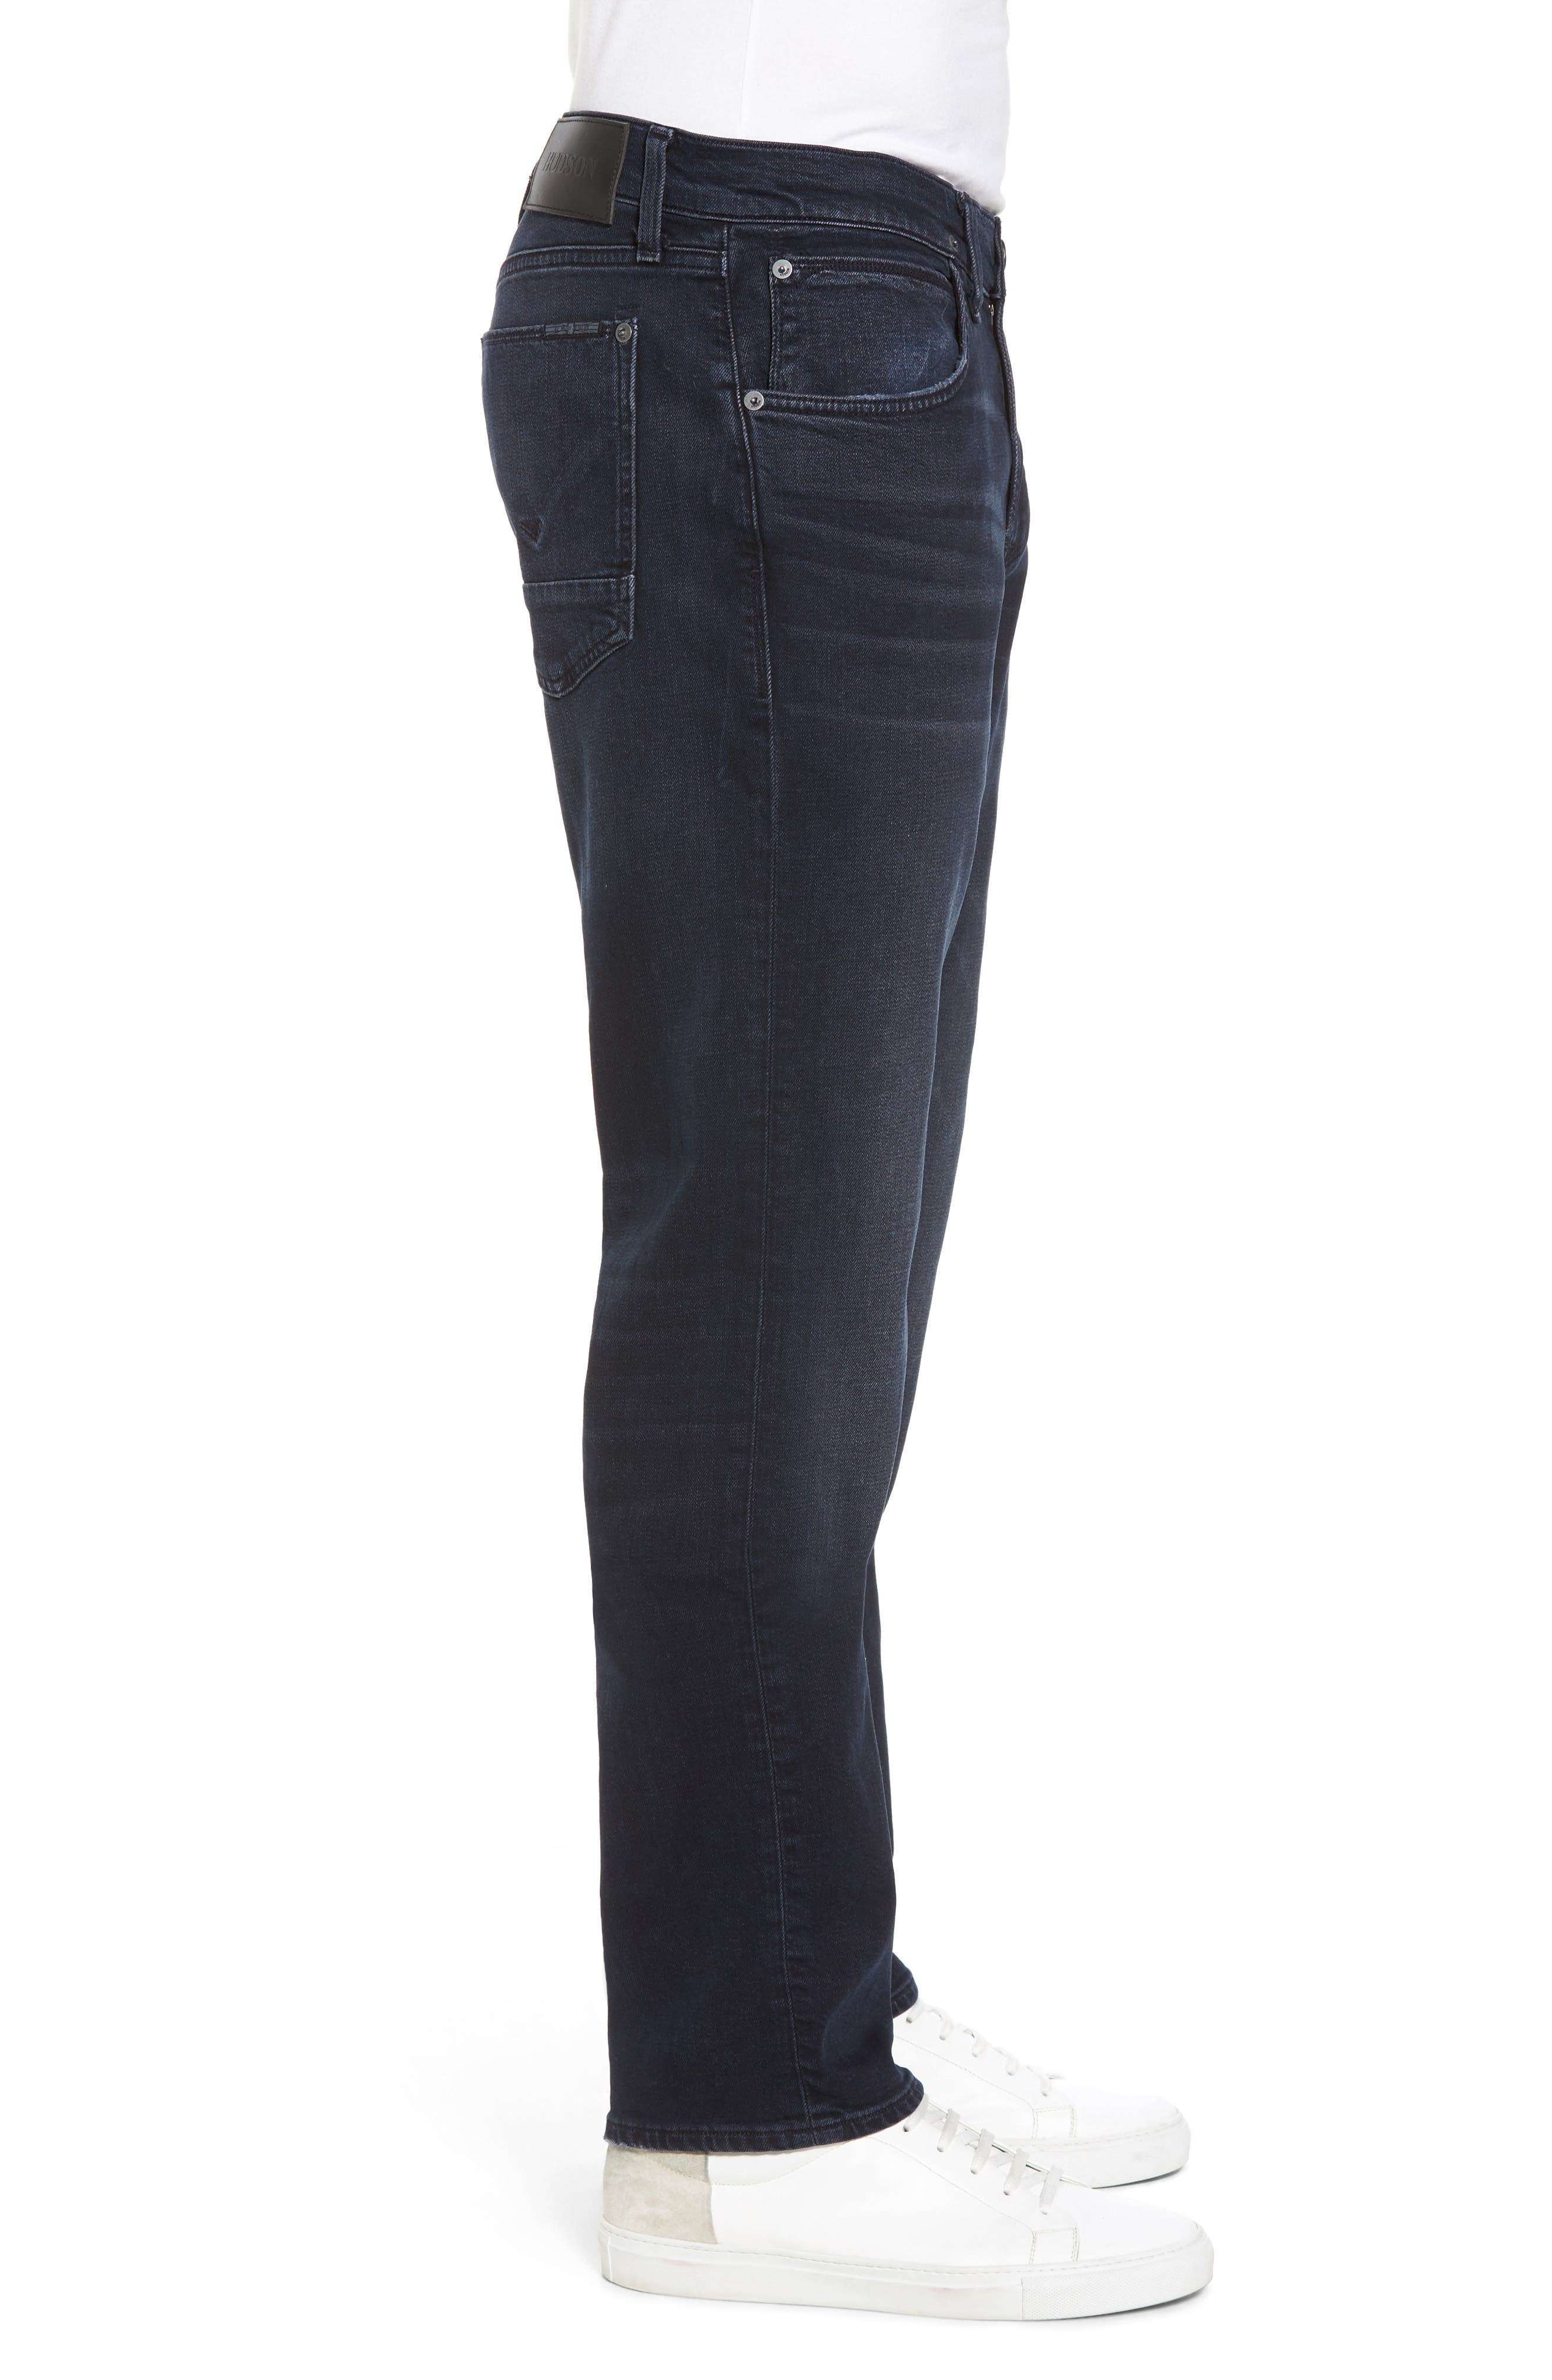 Byron Slim Straight Leg Jeans,                             Alternate thumbnail 3, color,                             404